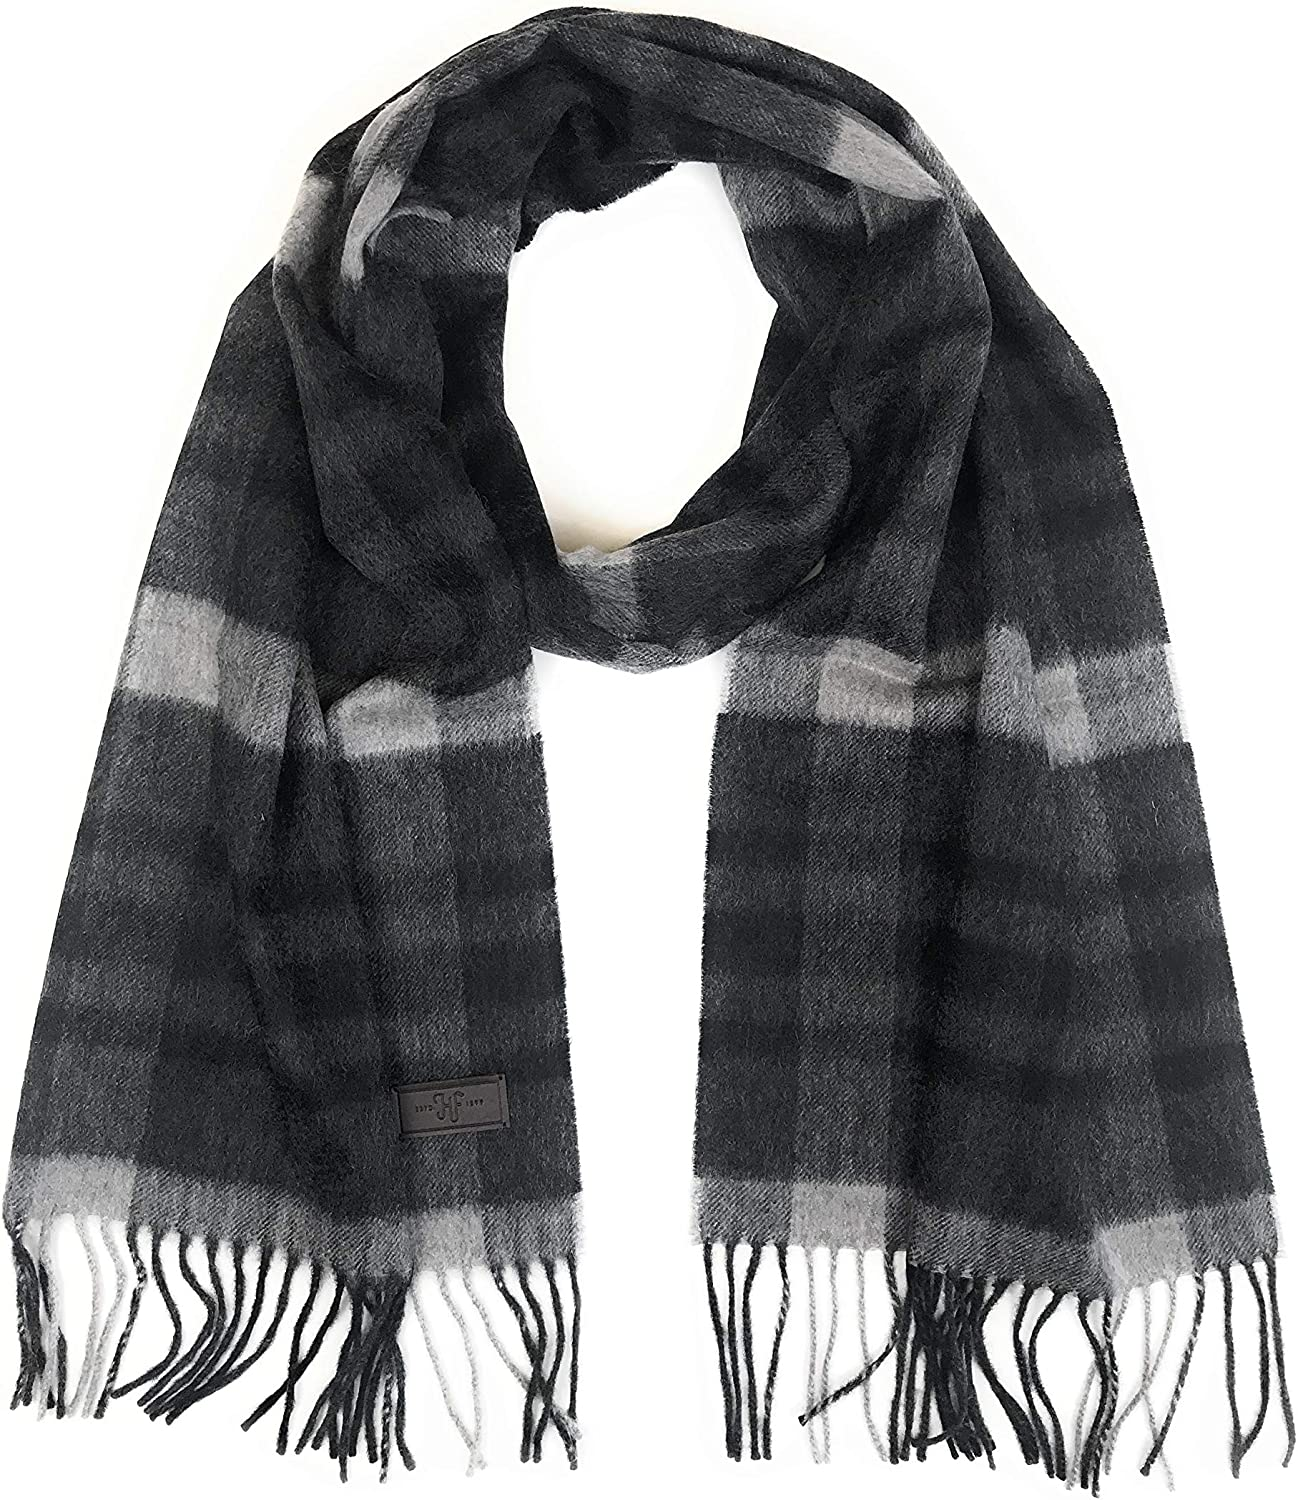 Hickey Freeman Men's Patterned Cashmere Scarf – 100% Italian Cashmere, 66 inches x 12 inches